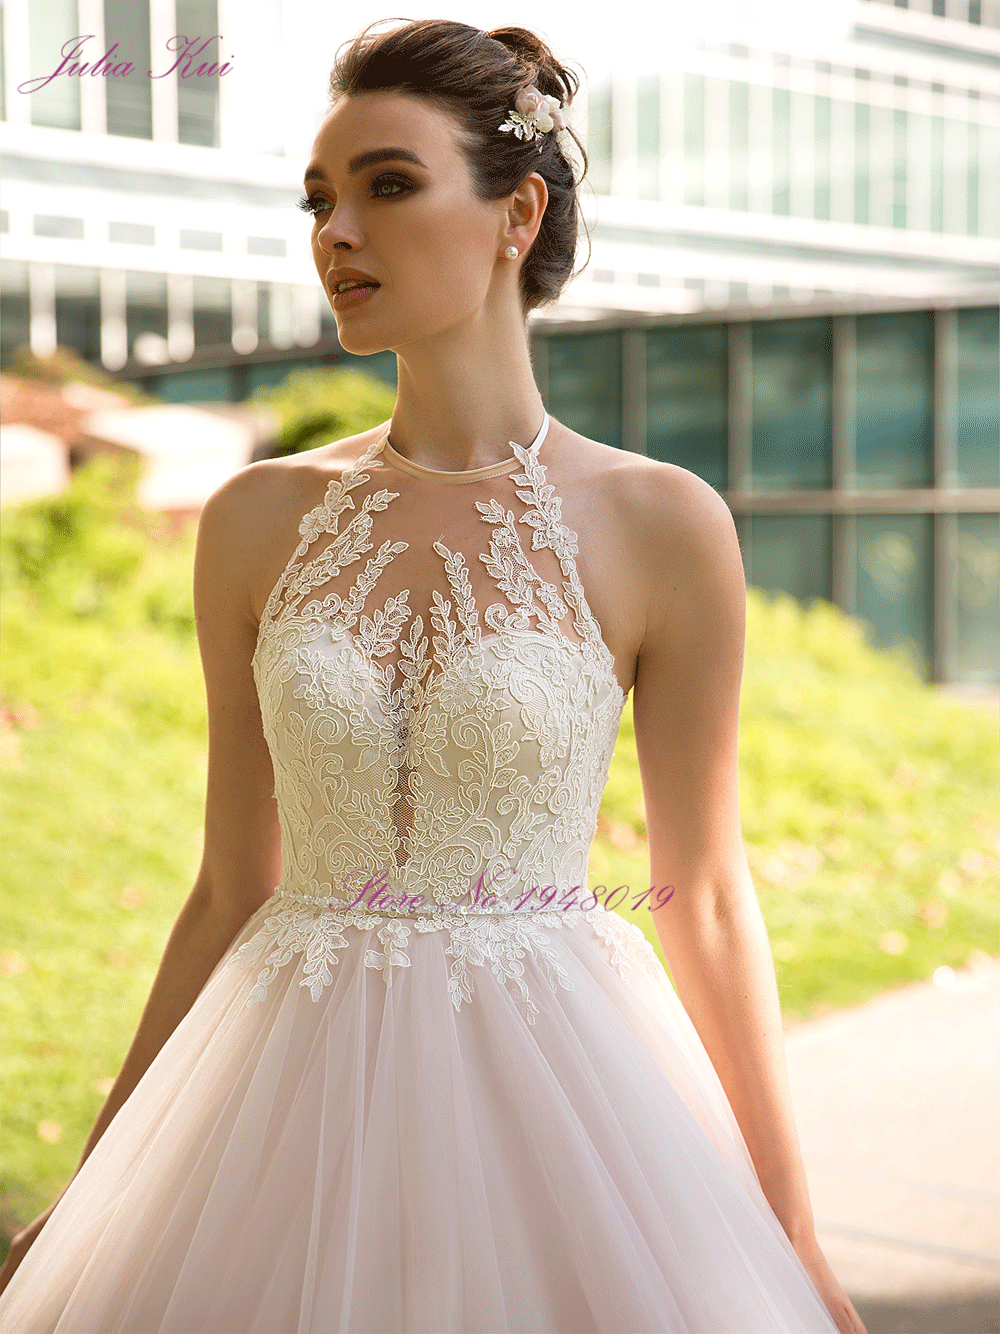 Julia Kui Vintage Ball Gown Wedding Dress 2020 Customized Sexy Halter Backless Court Train Princess Wedding Gowns - 3